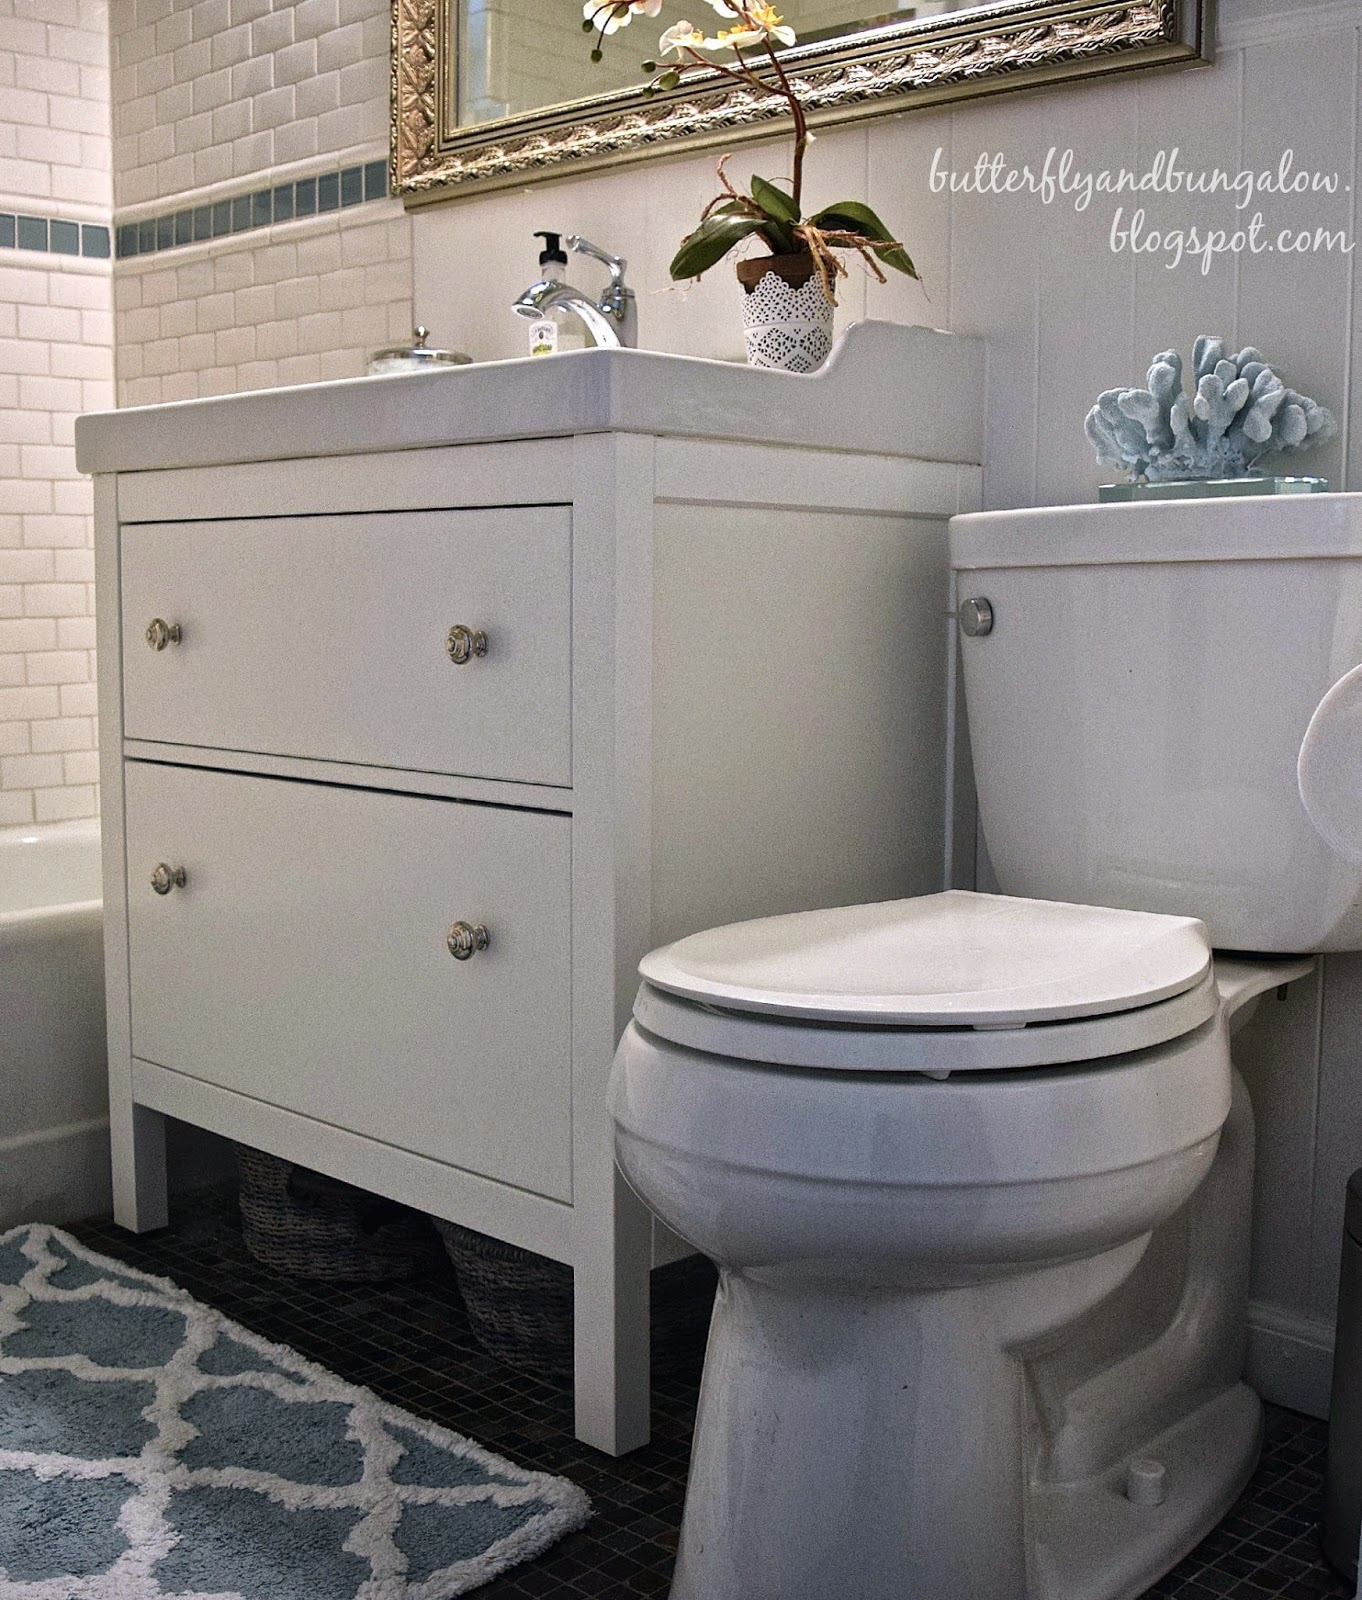 Butterfly 8 8 Bungalow Affordable Cottage Bathroom Remodel